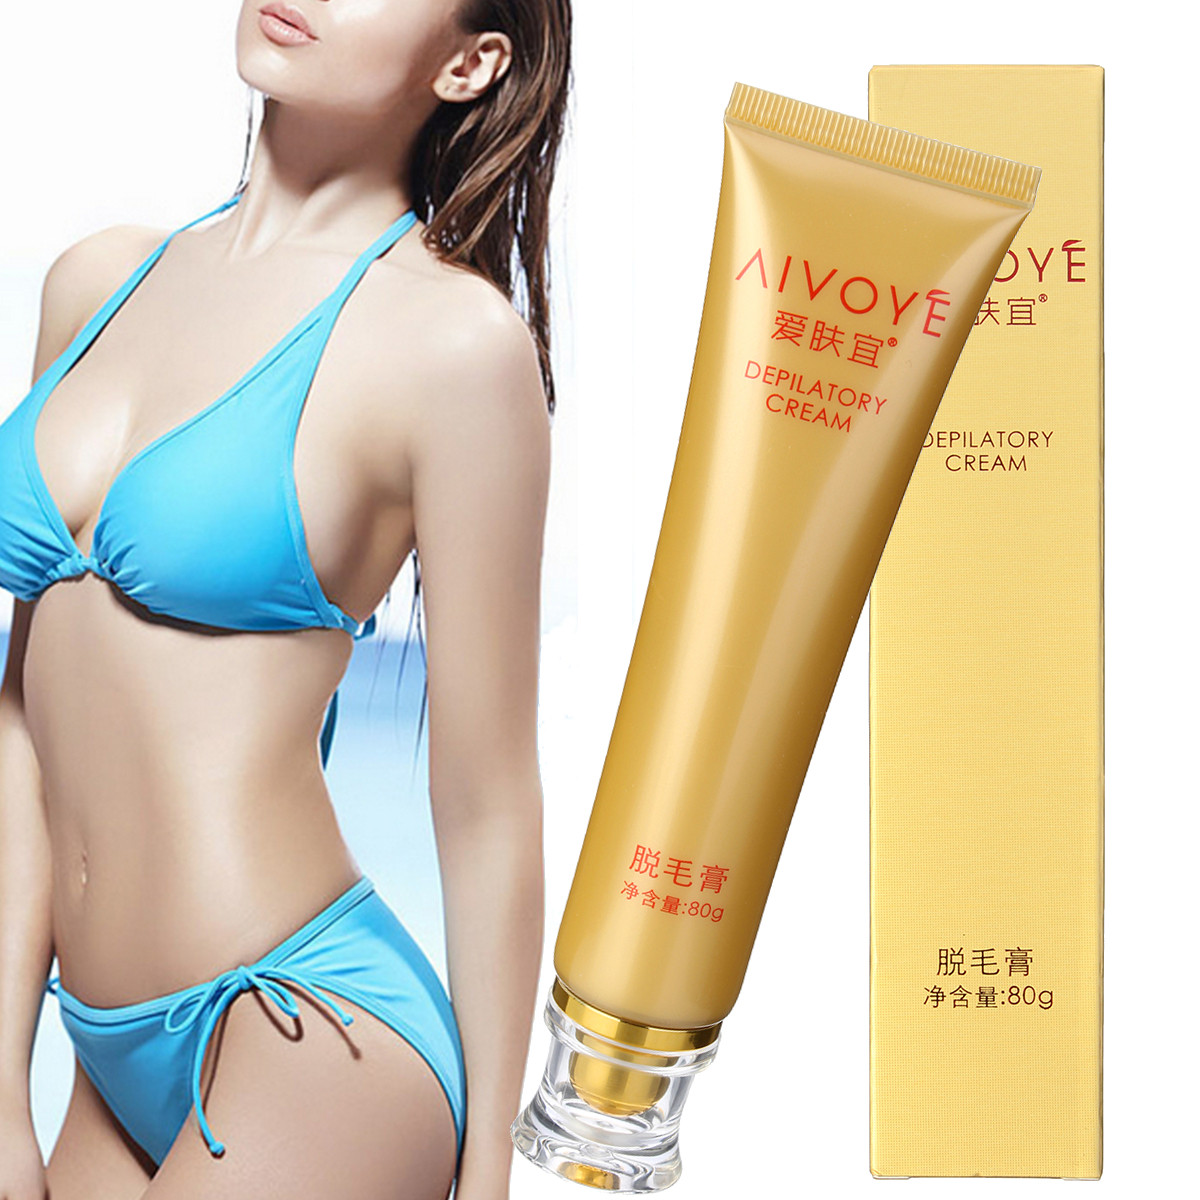 AIVOYE Powerful Permanent Hair Removal Cream Stop Hair Growth Inhibitor Depilatory